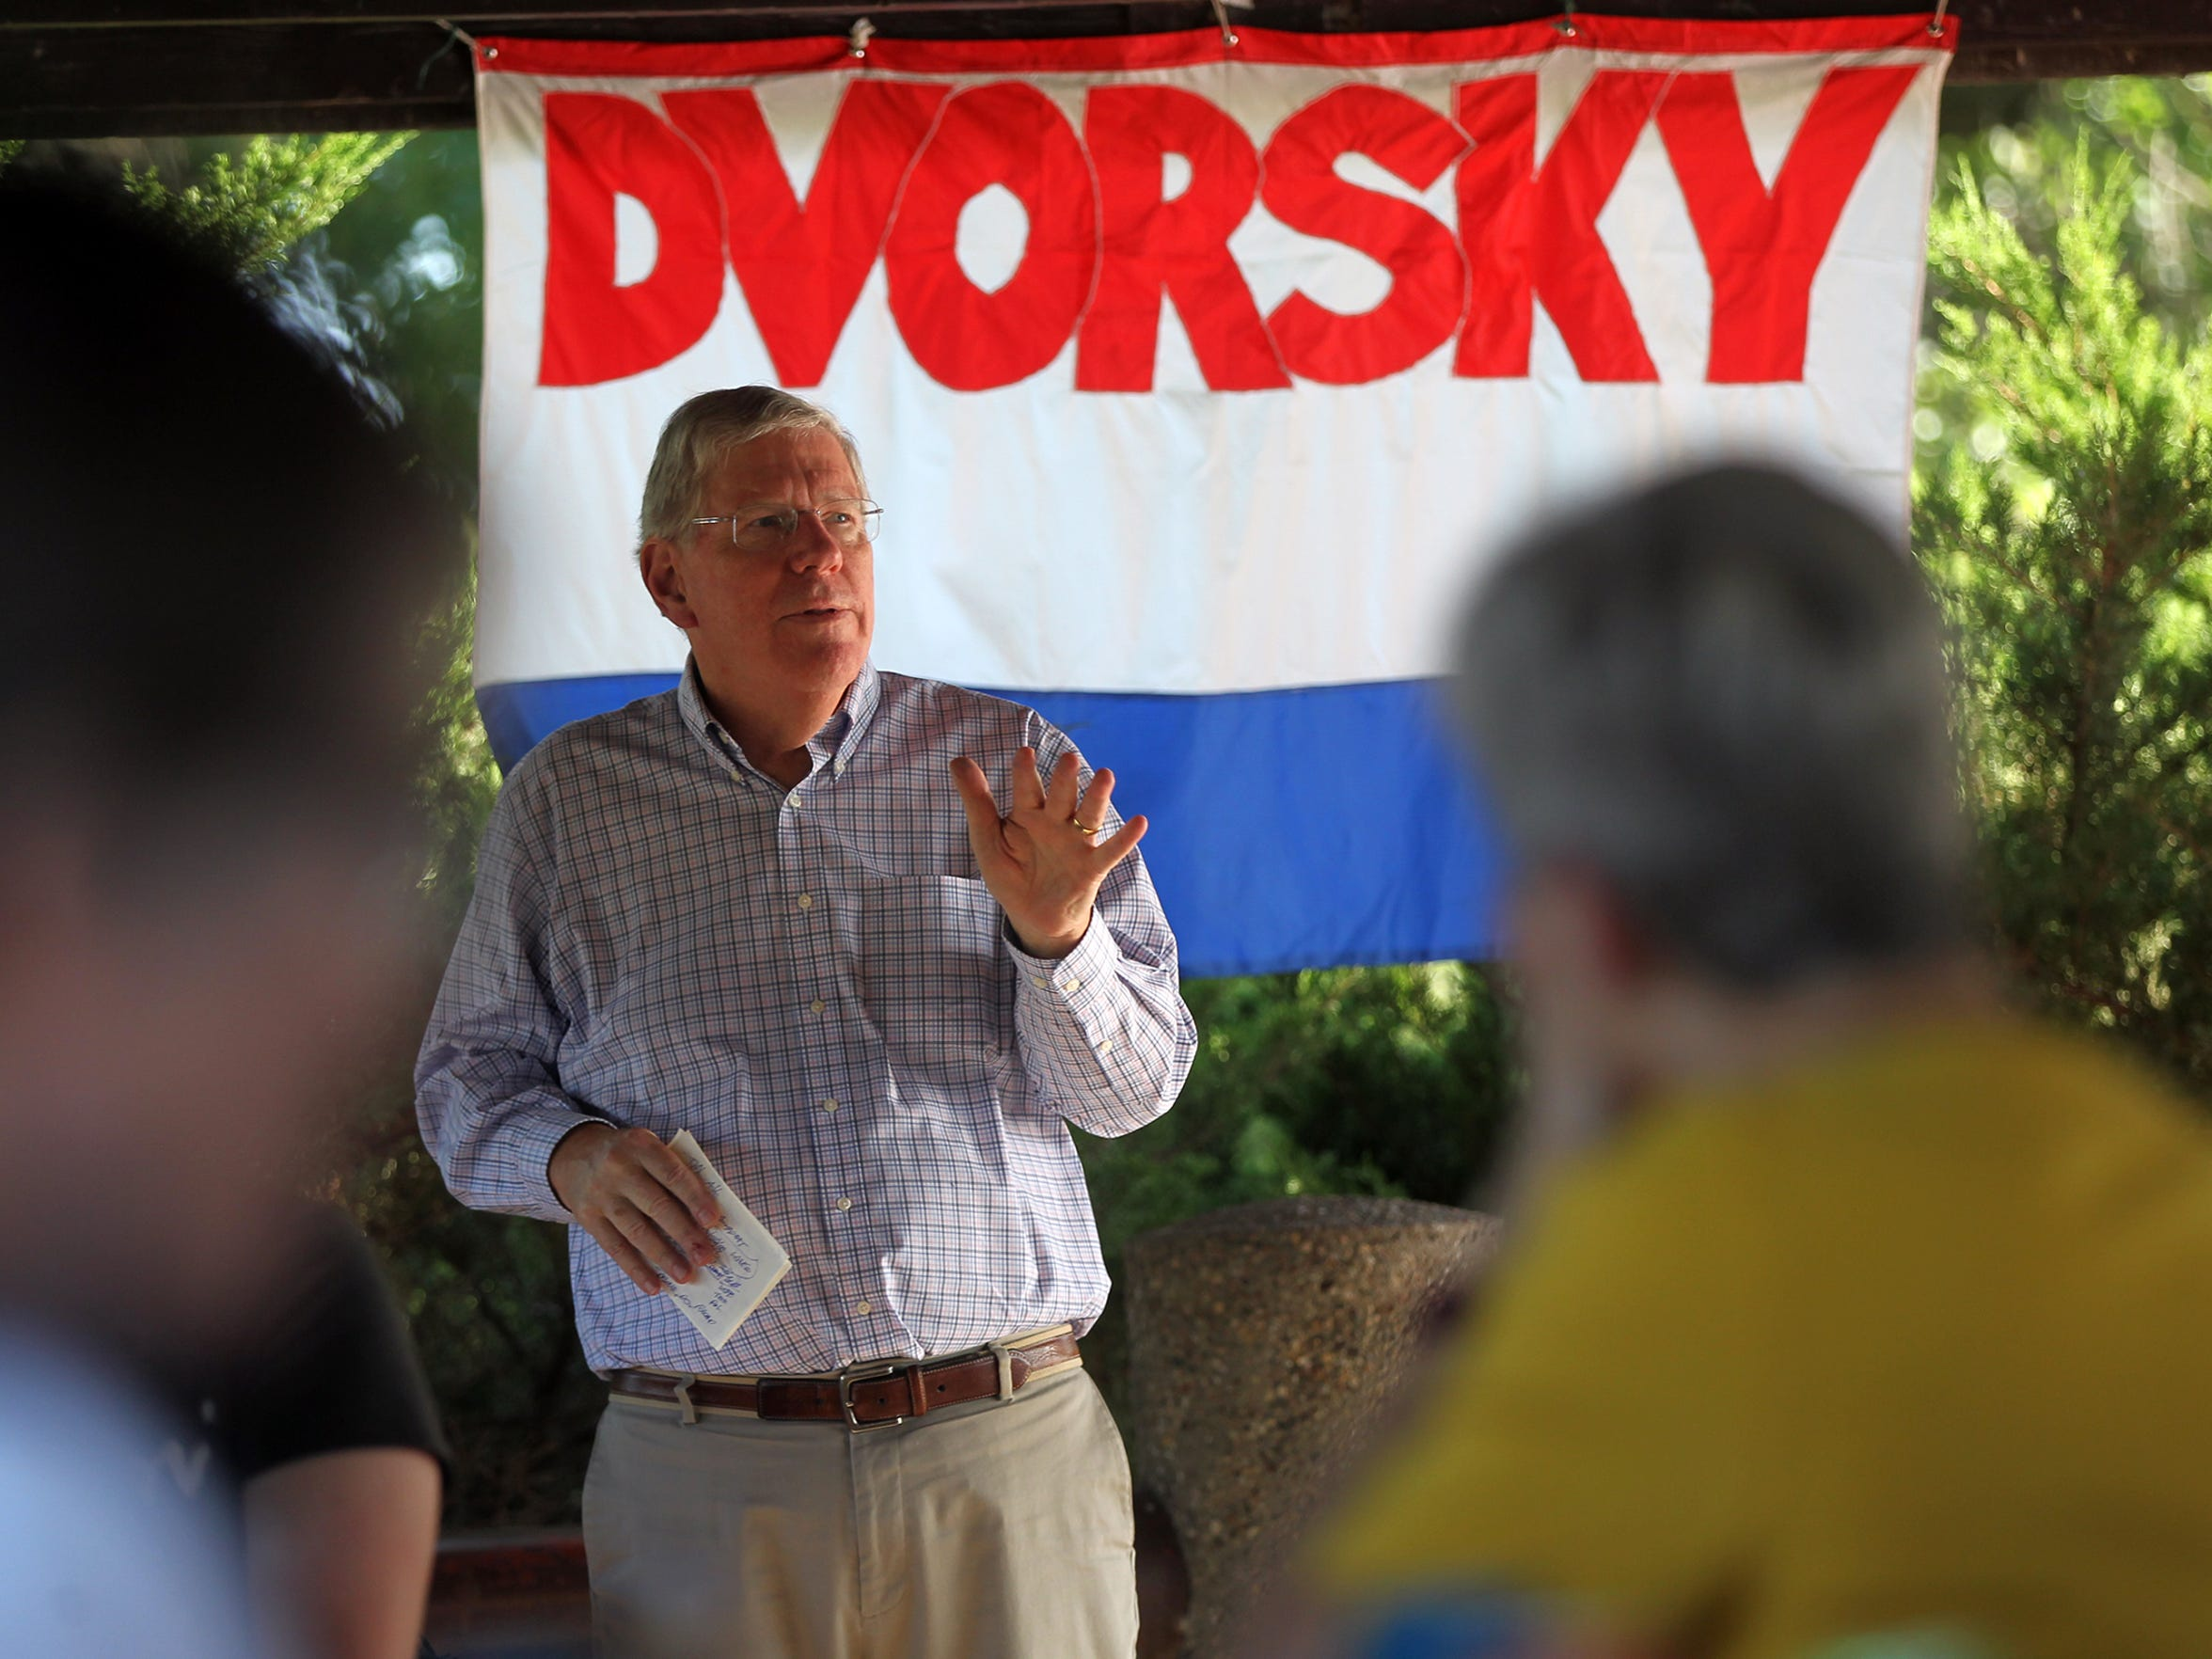 Sen. Bob Dvorsky (D-Coralville) thanks friends and